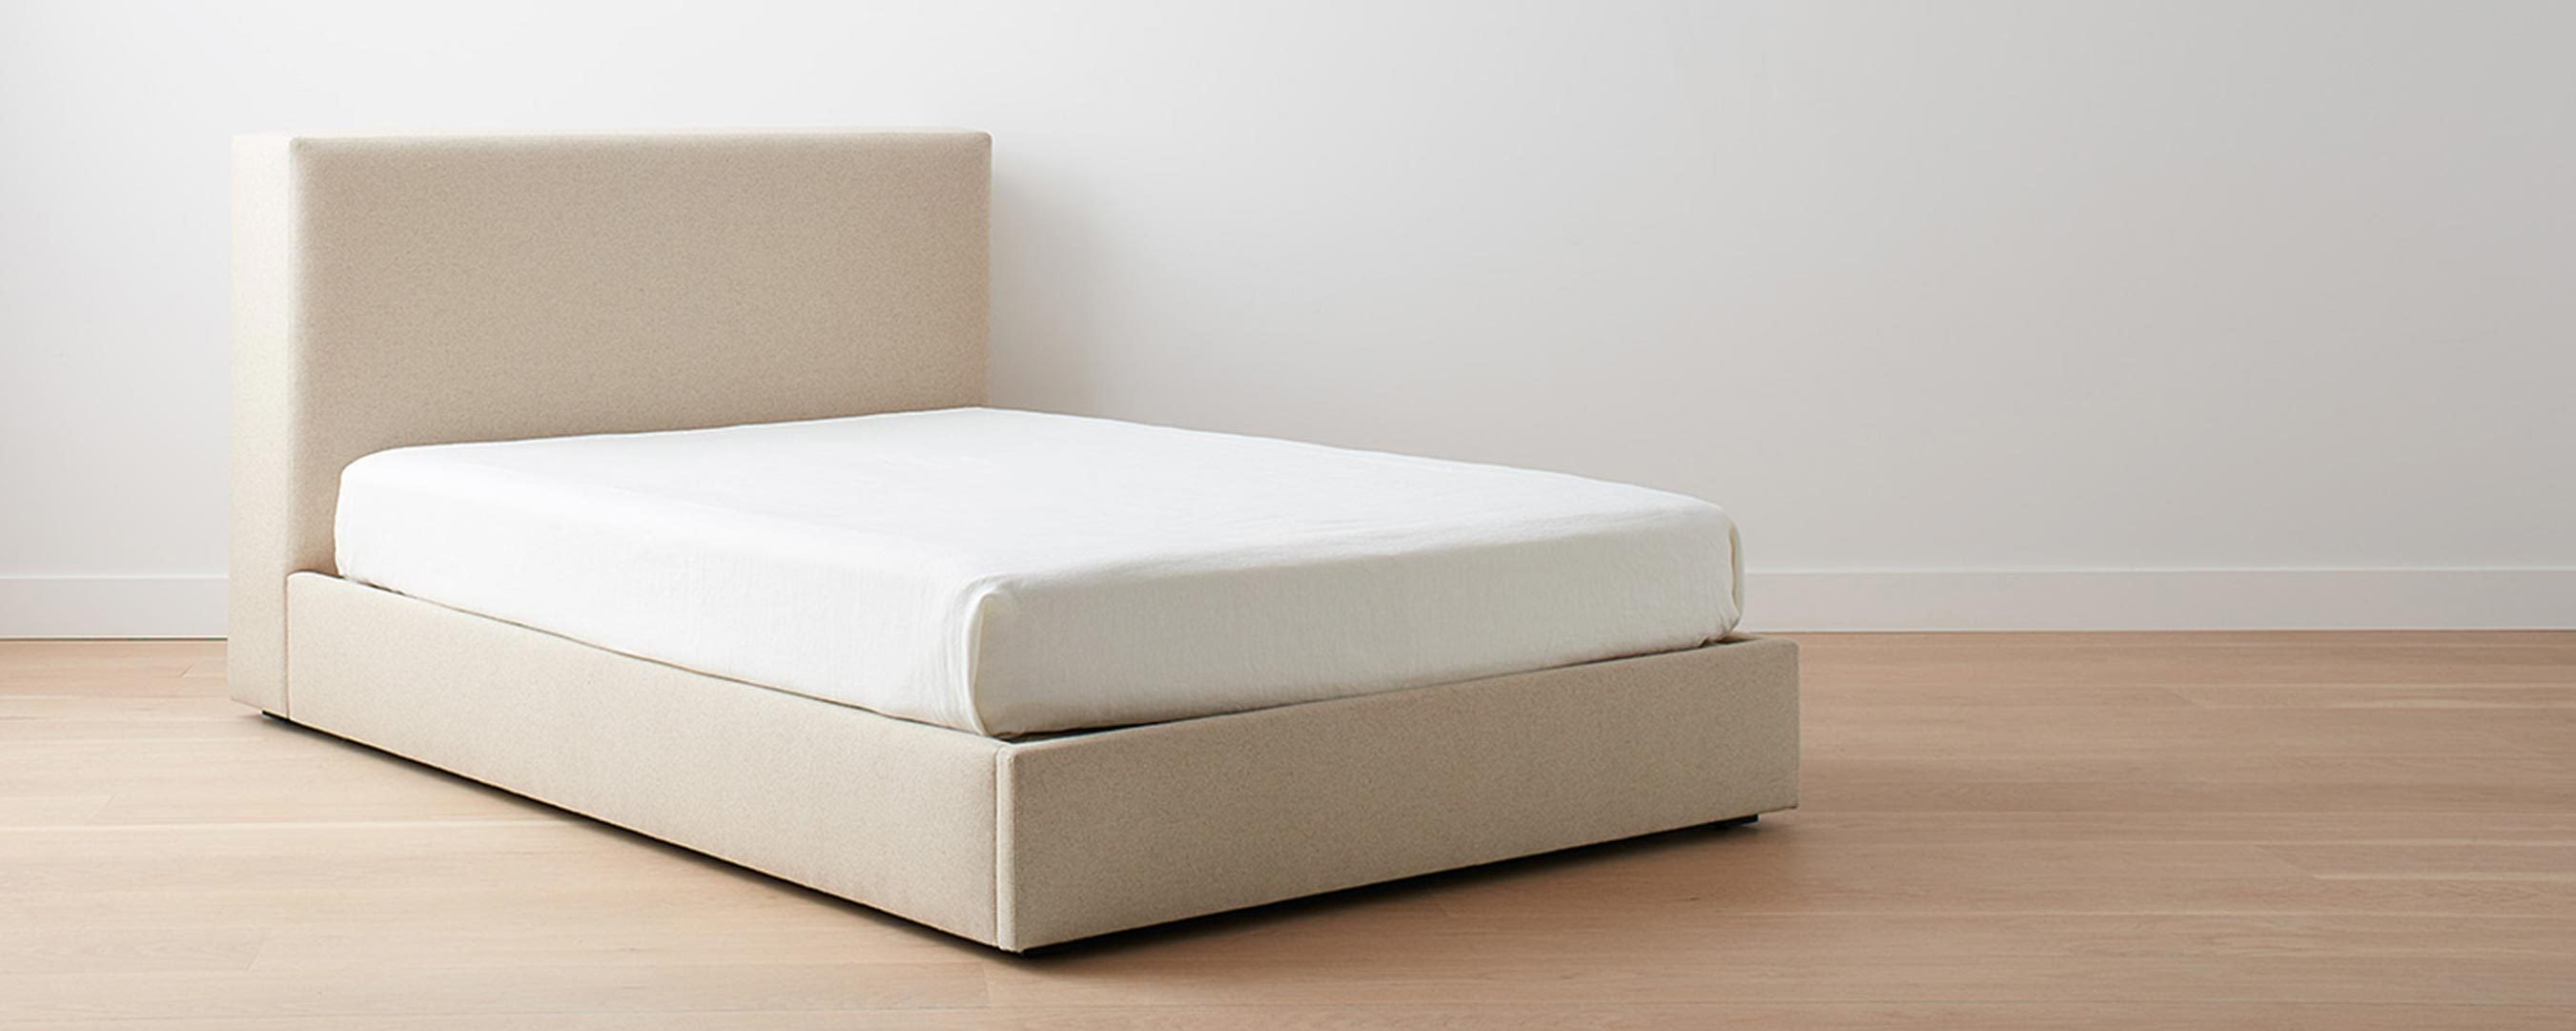 lazy point bed